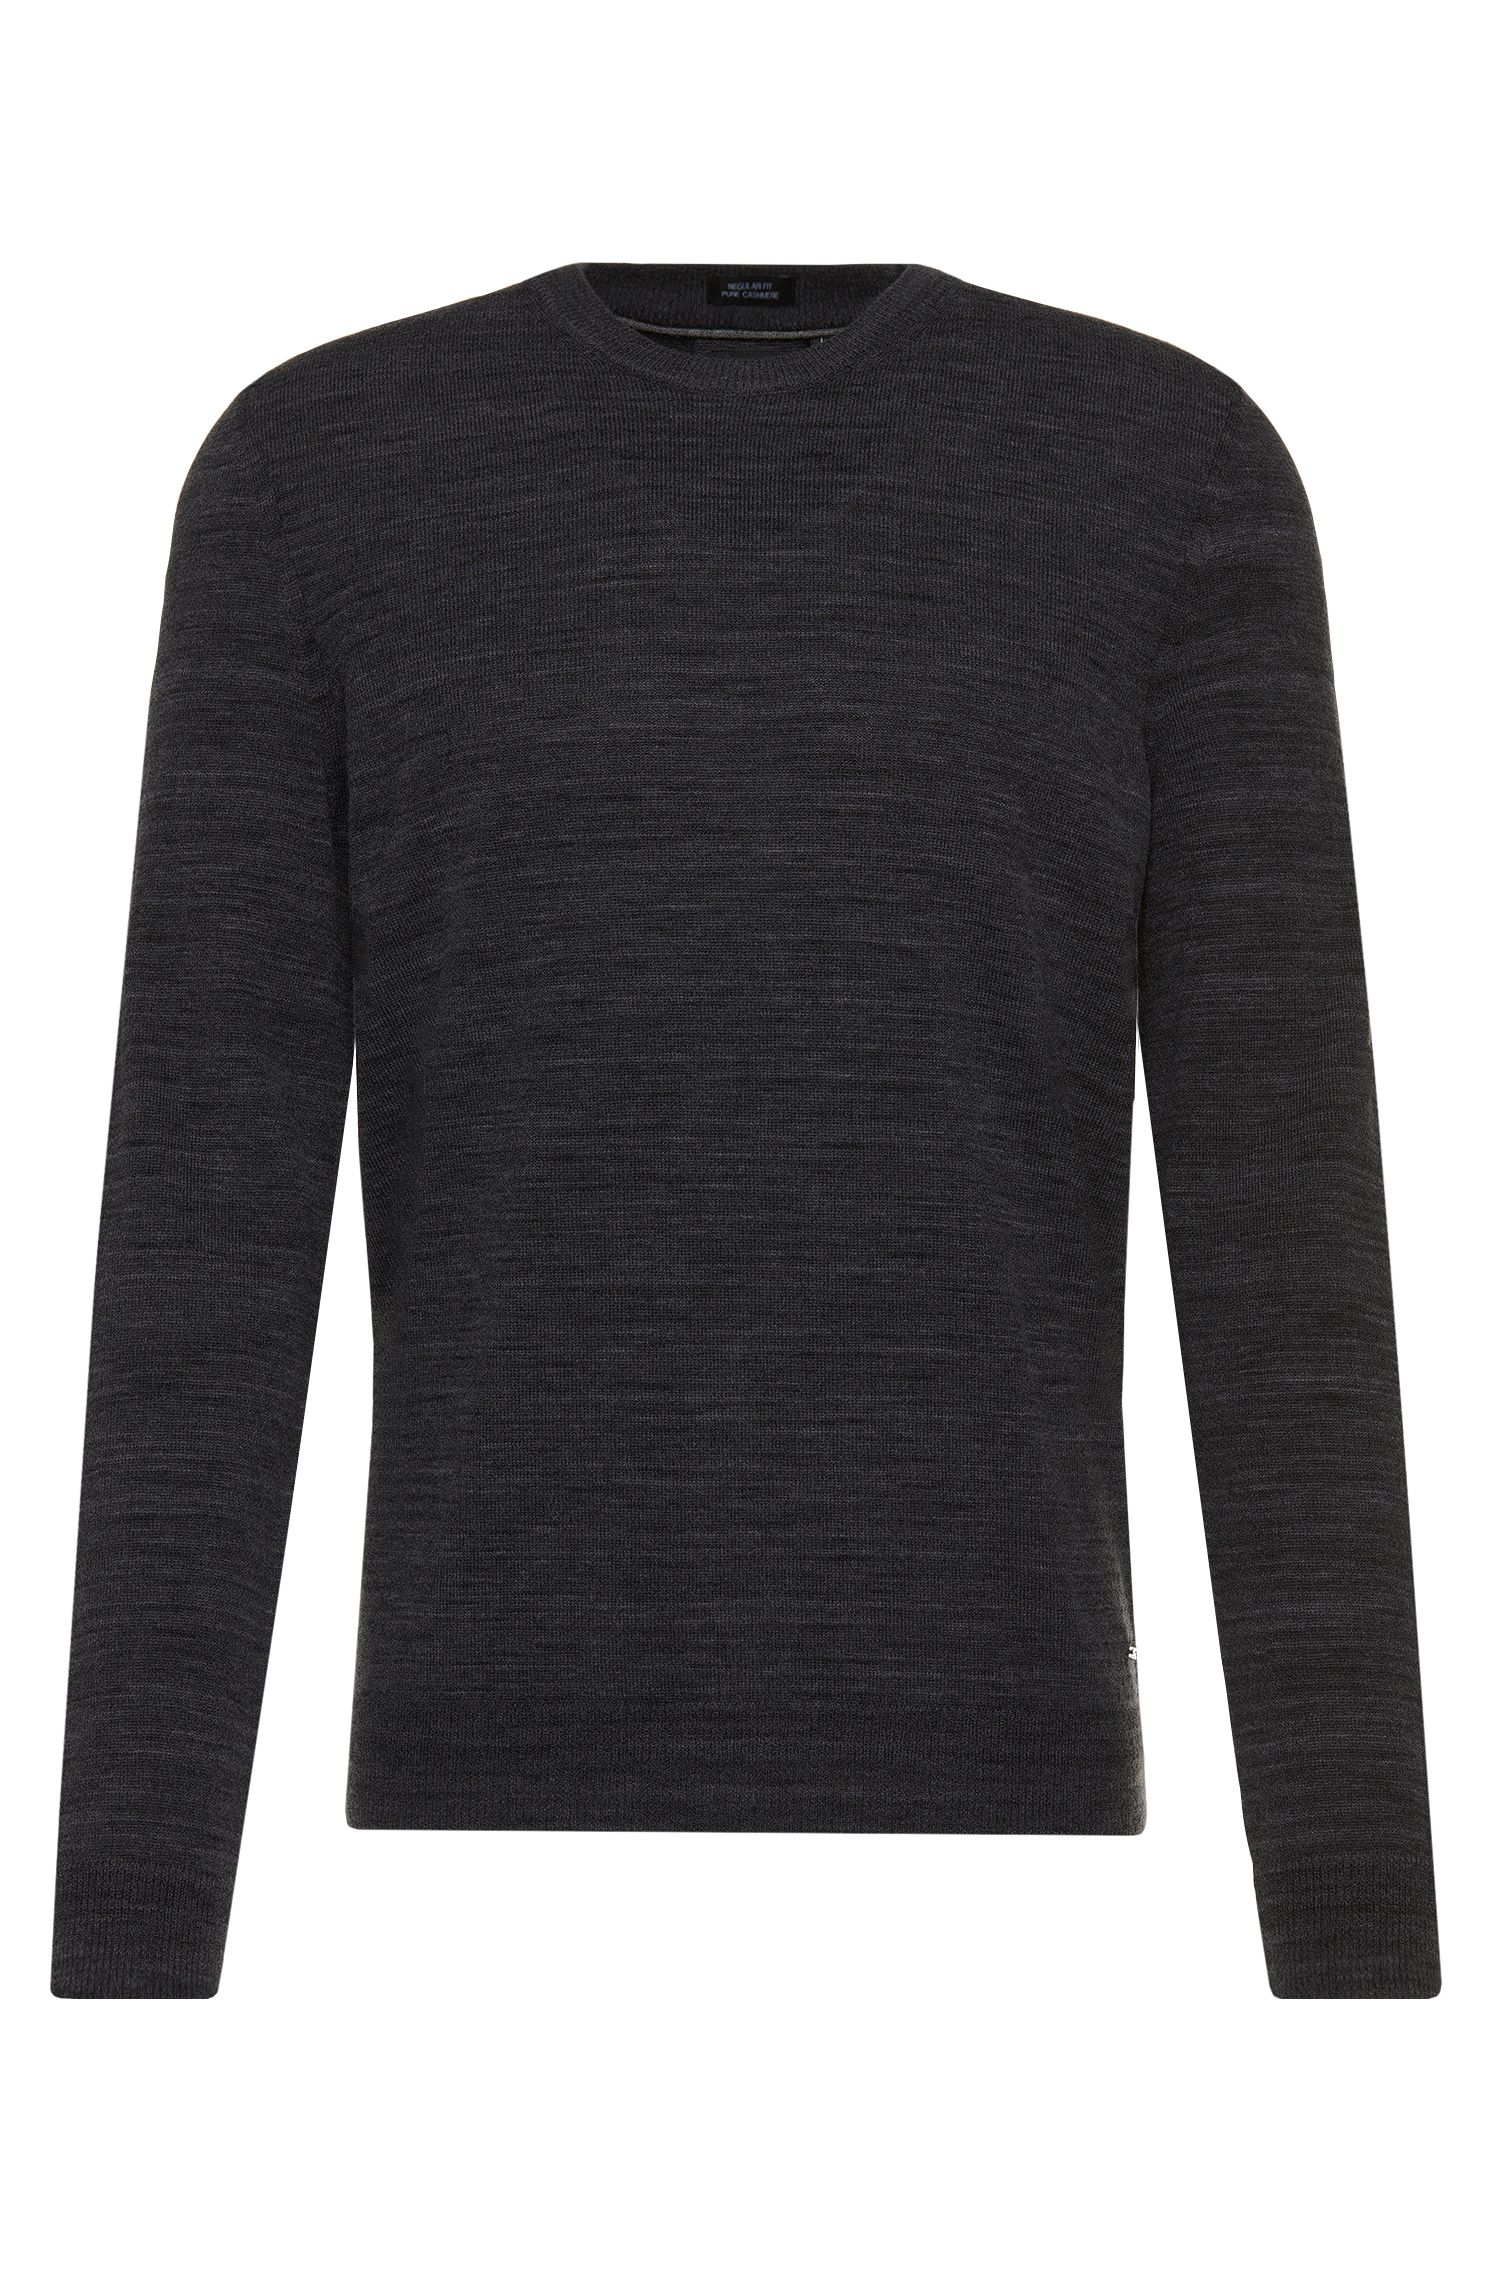 Melierter Regular-Fit Tailored Pullover aus reinem Kaschmir: 'T-Barno'